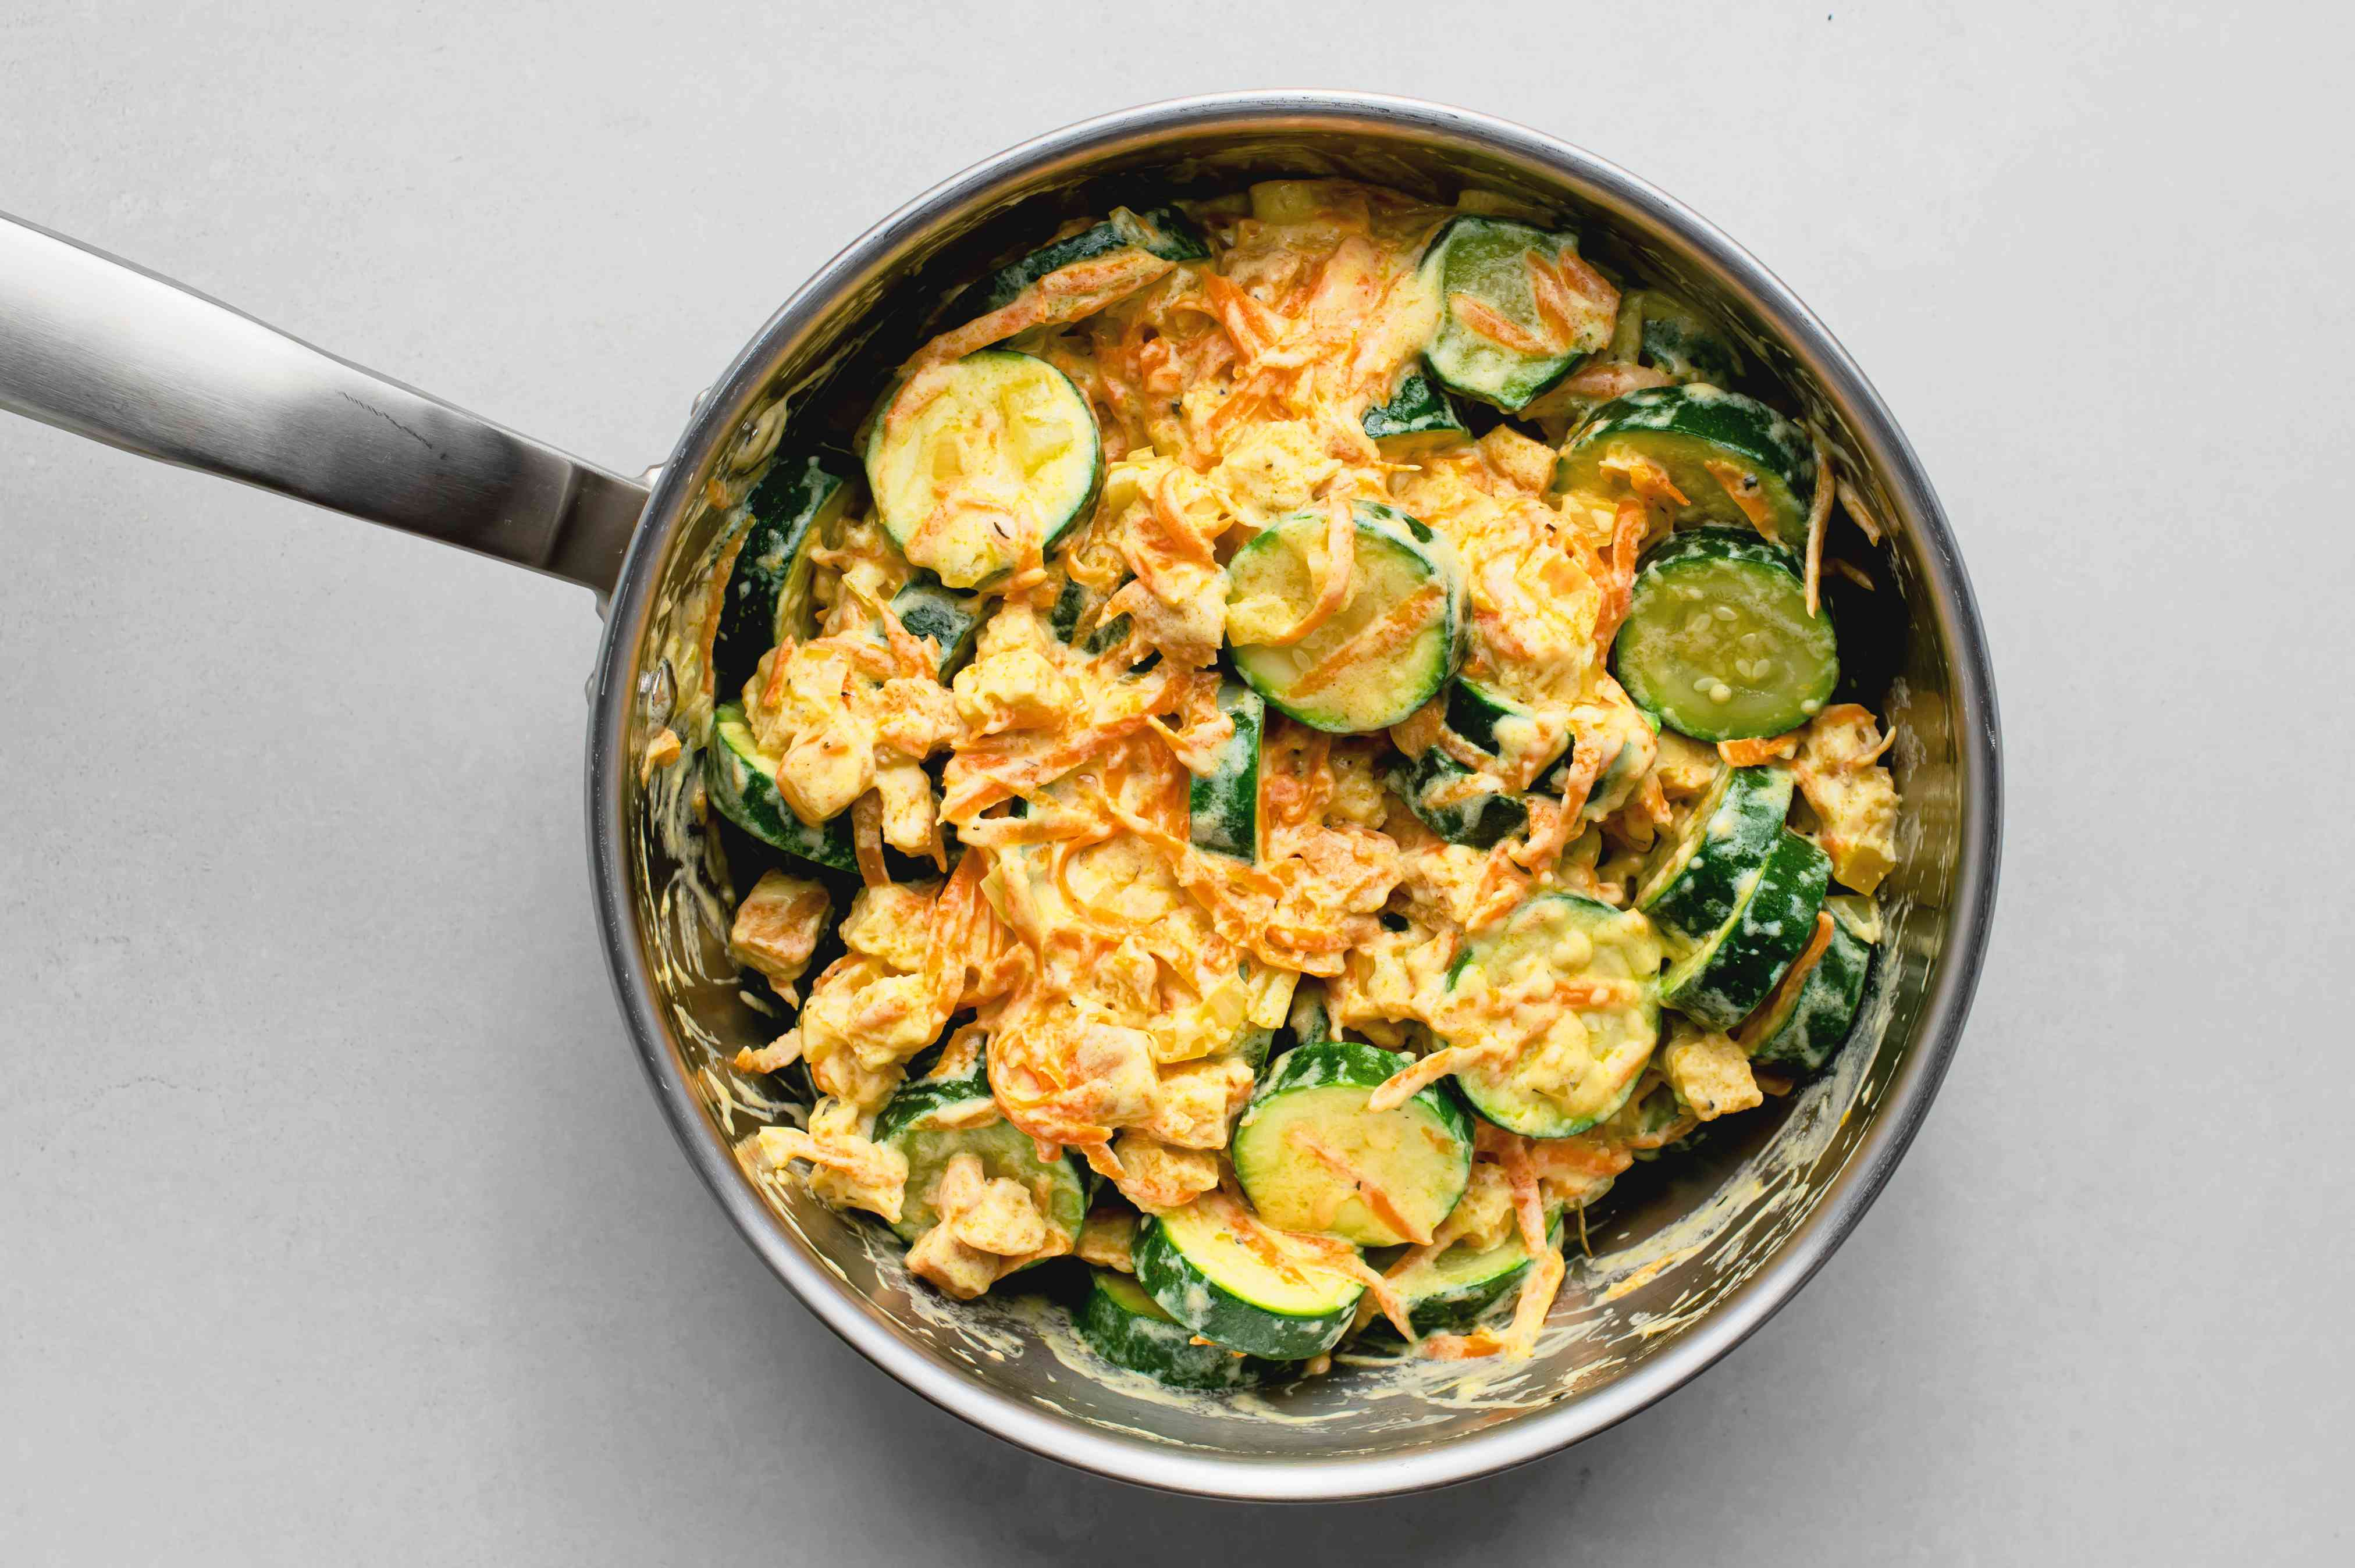 zucchini added to the stuffing mixture in the pan